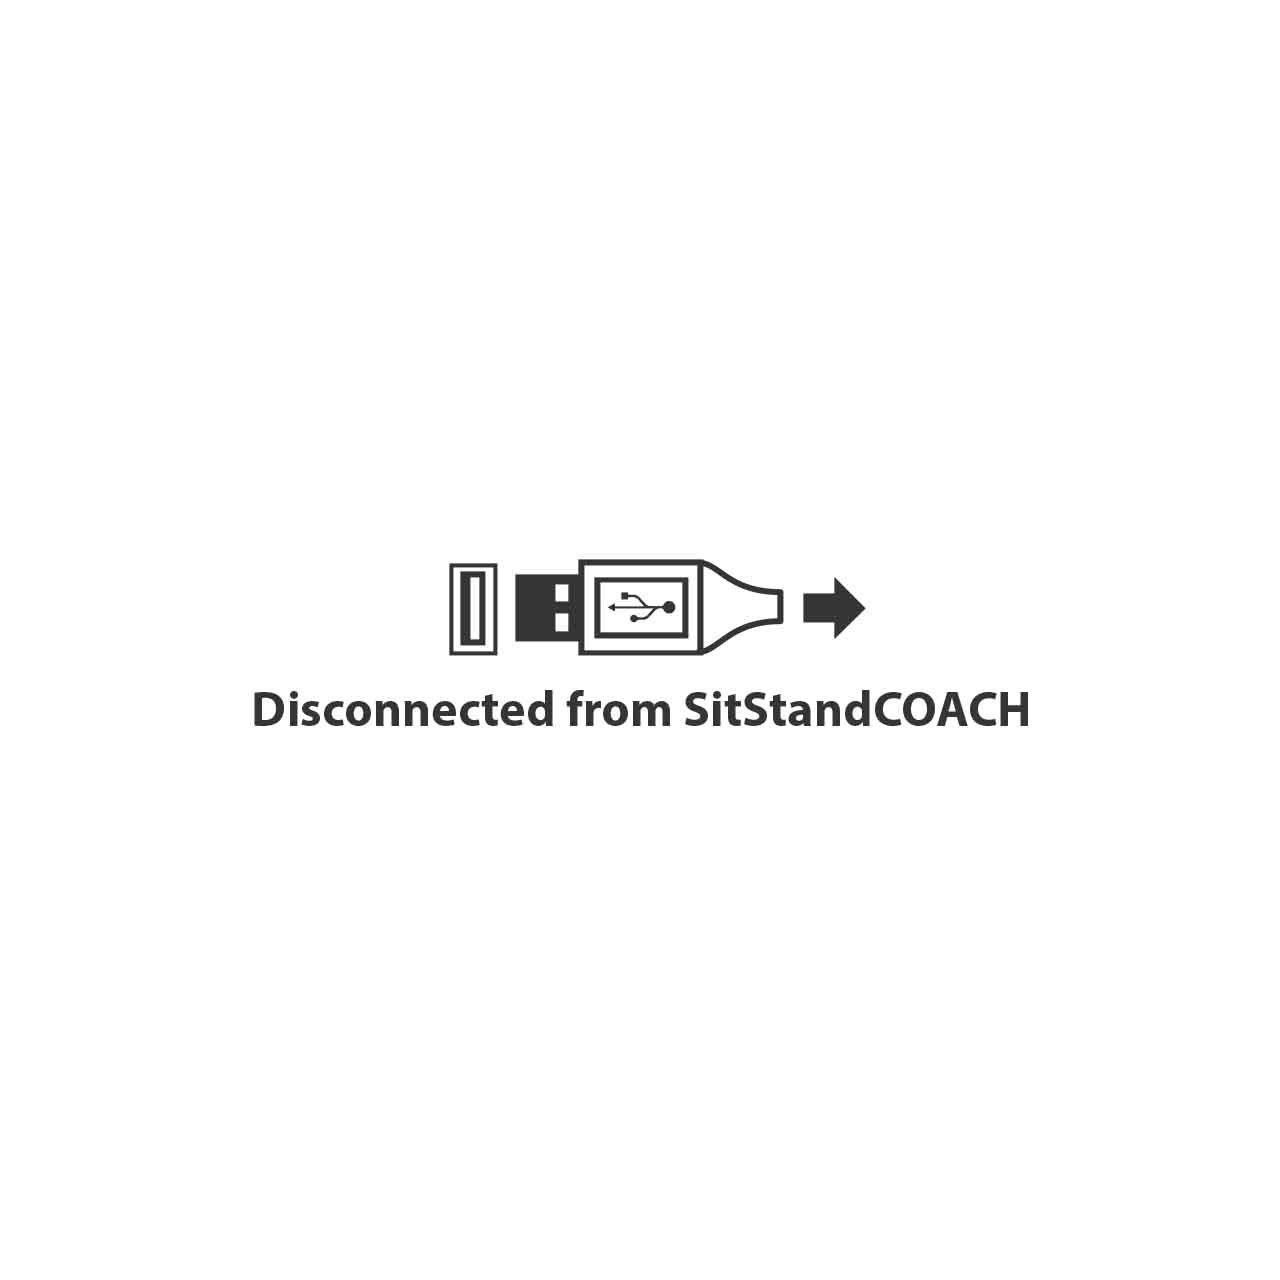 SitStandCoach arbo software usb disconnected